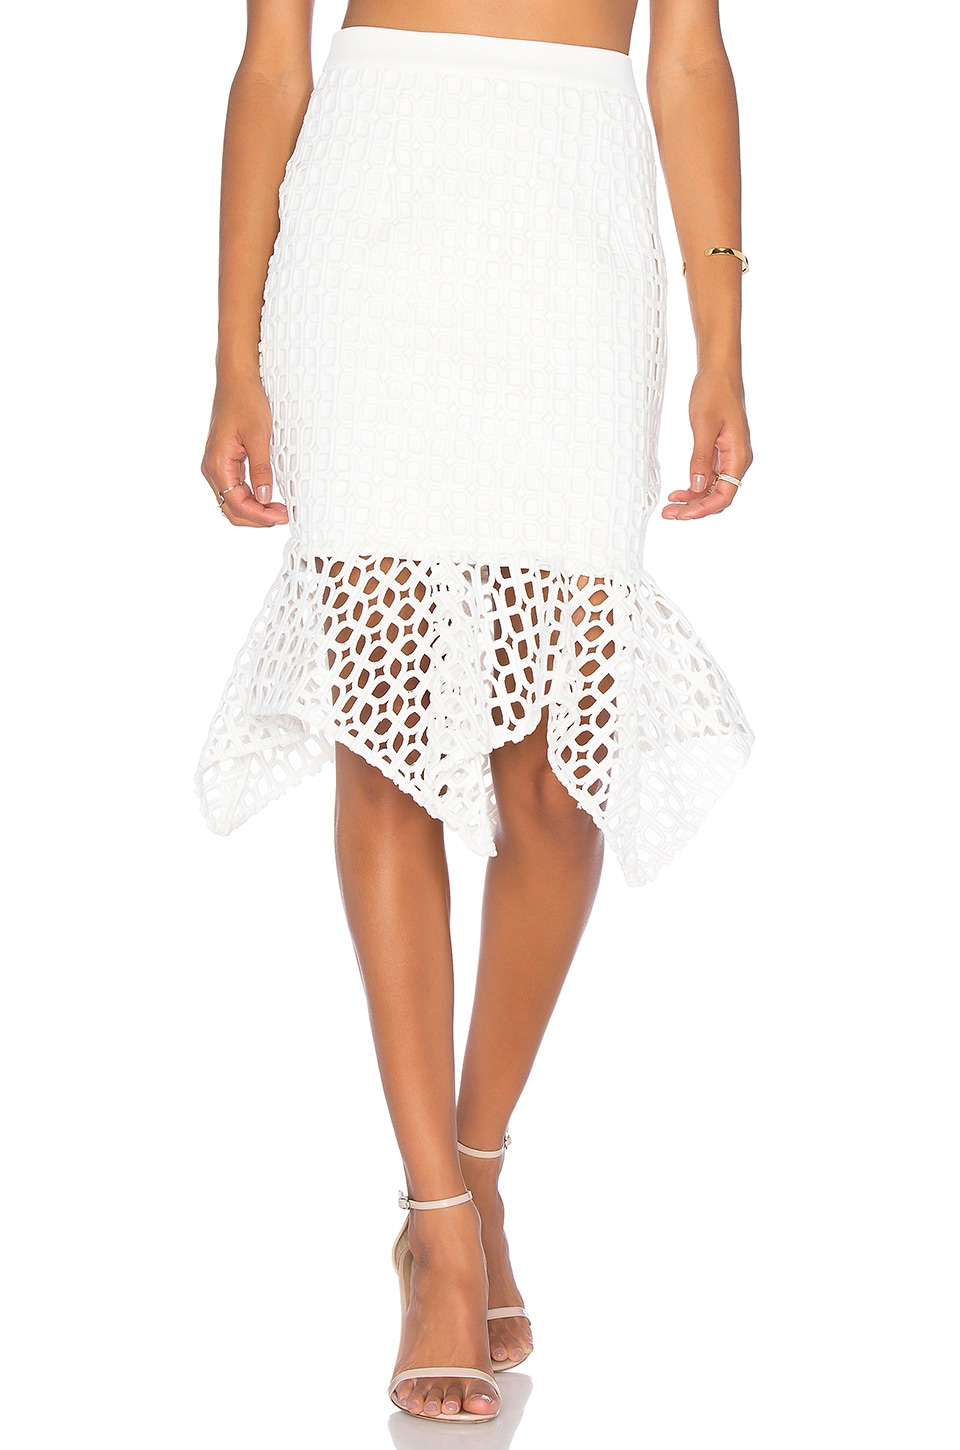 Doubleday Embroidered Handkerchief Skirt by aijek